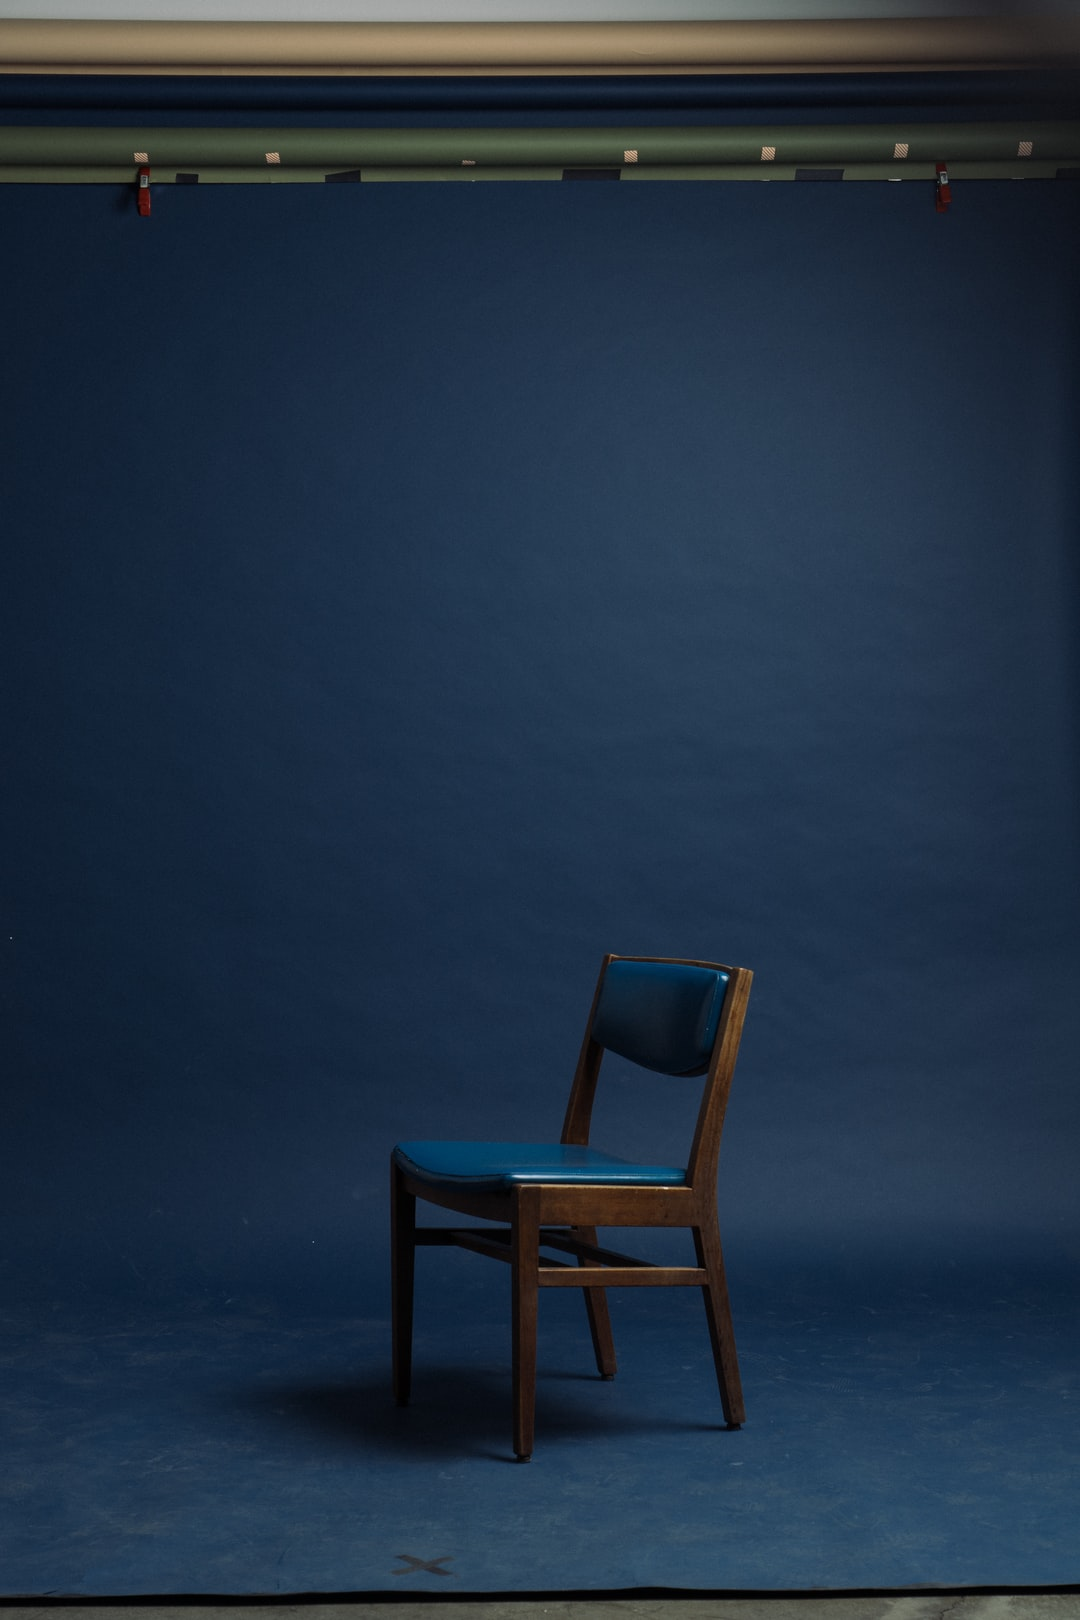 Blue seamless backdrop with chair background plate Shot by Chase Wilson http://agroism.com